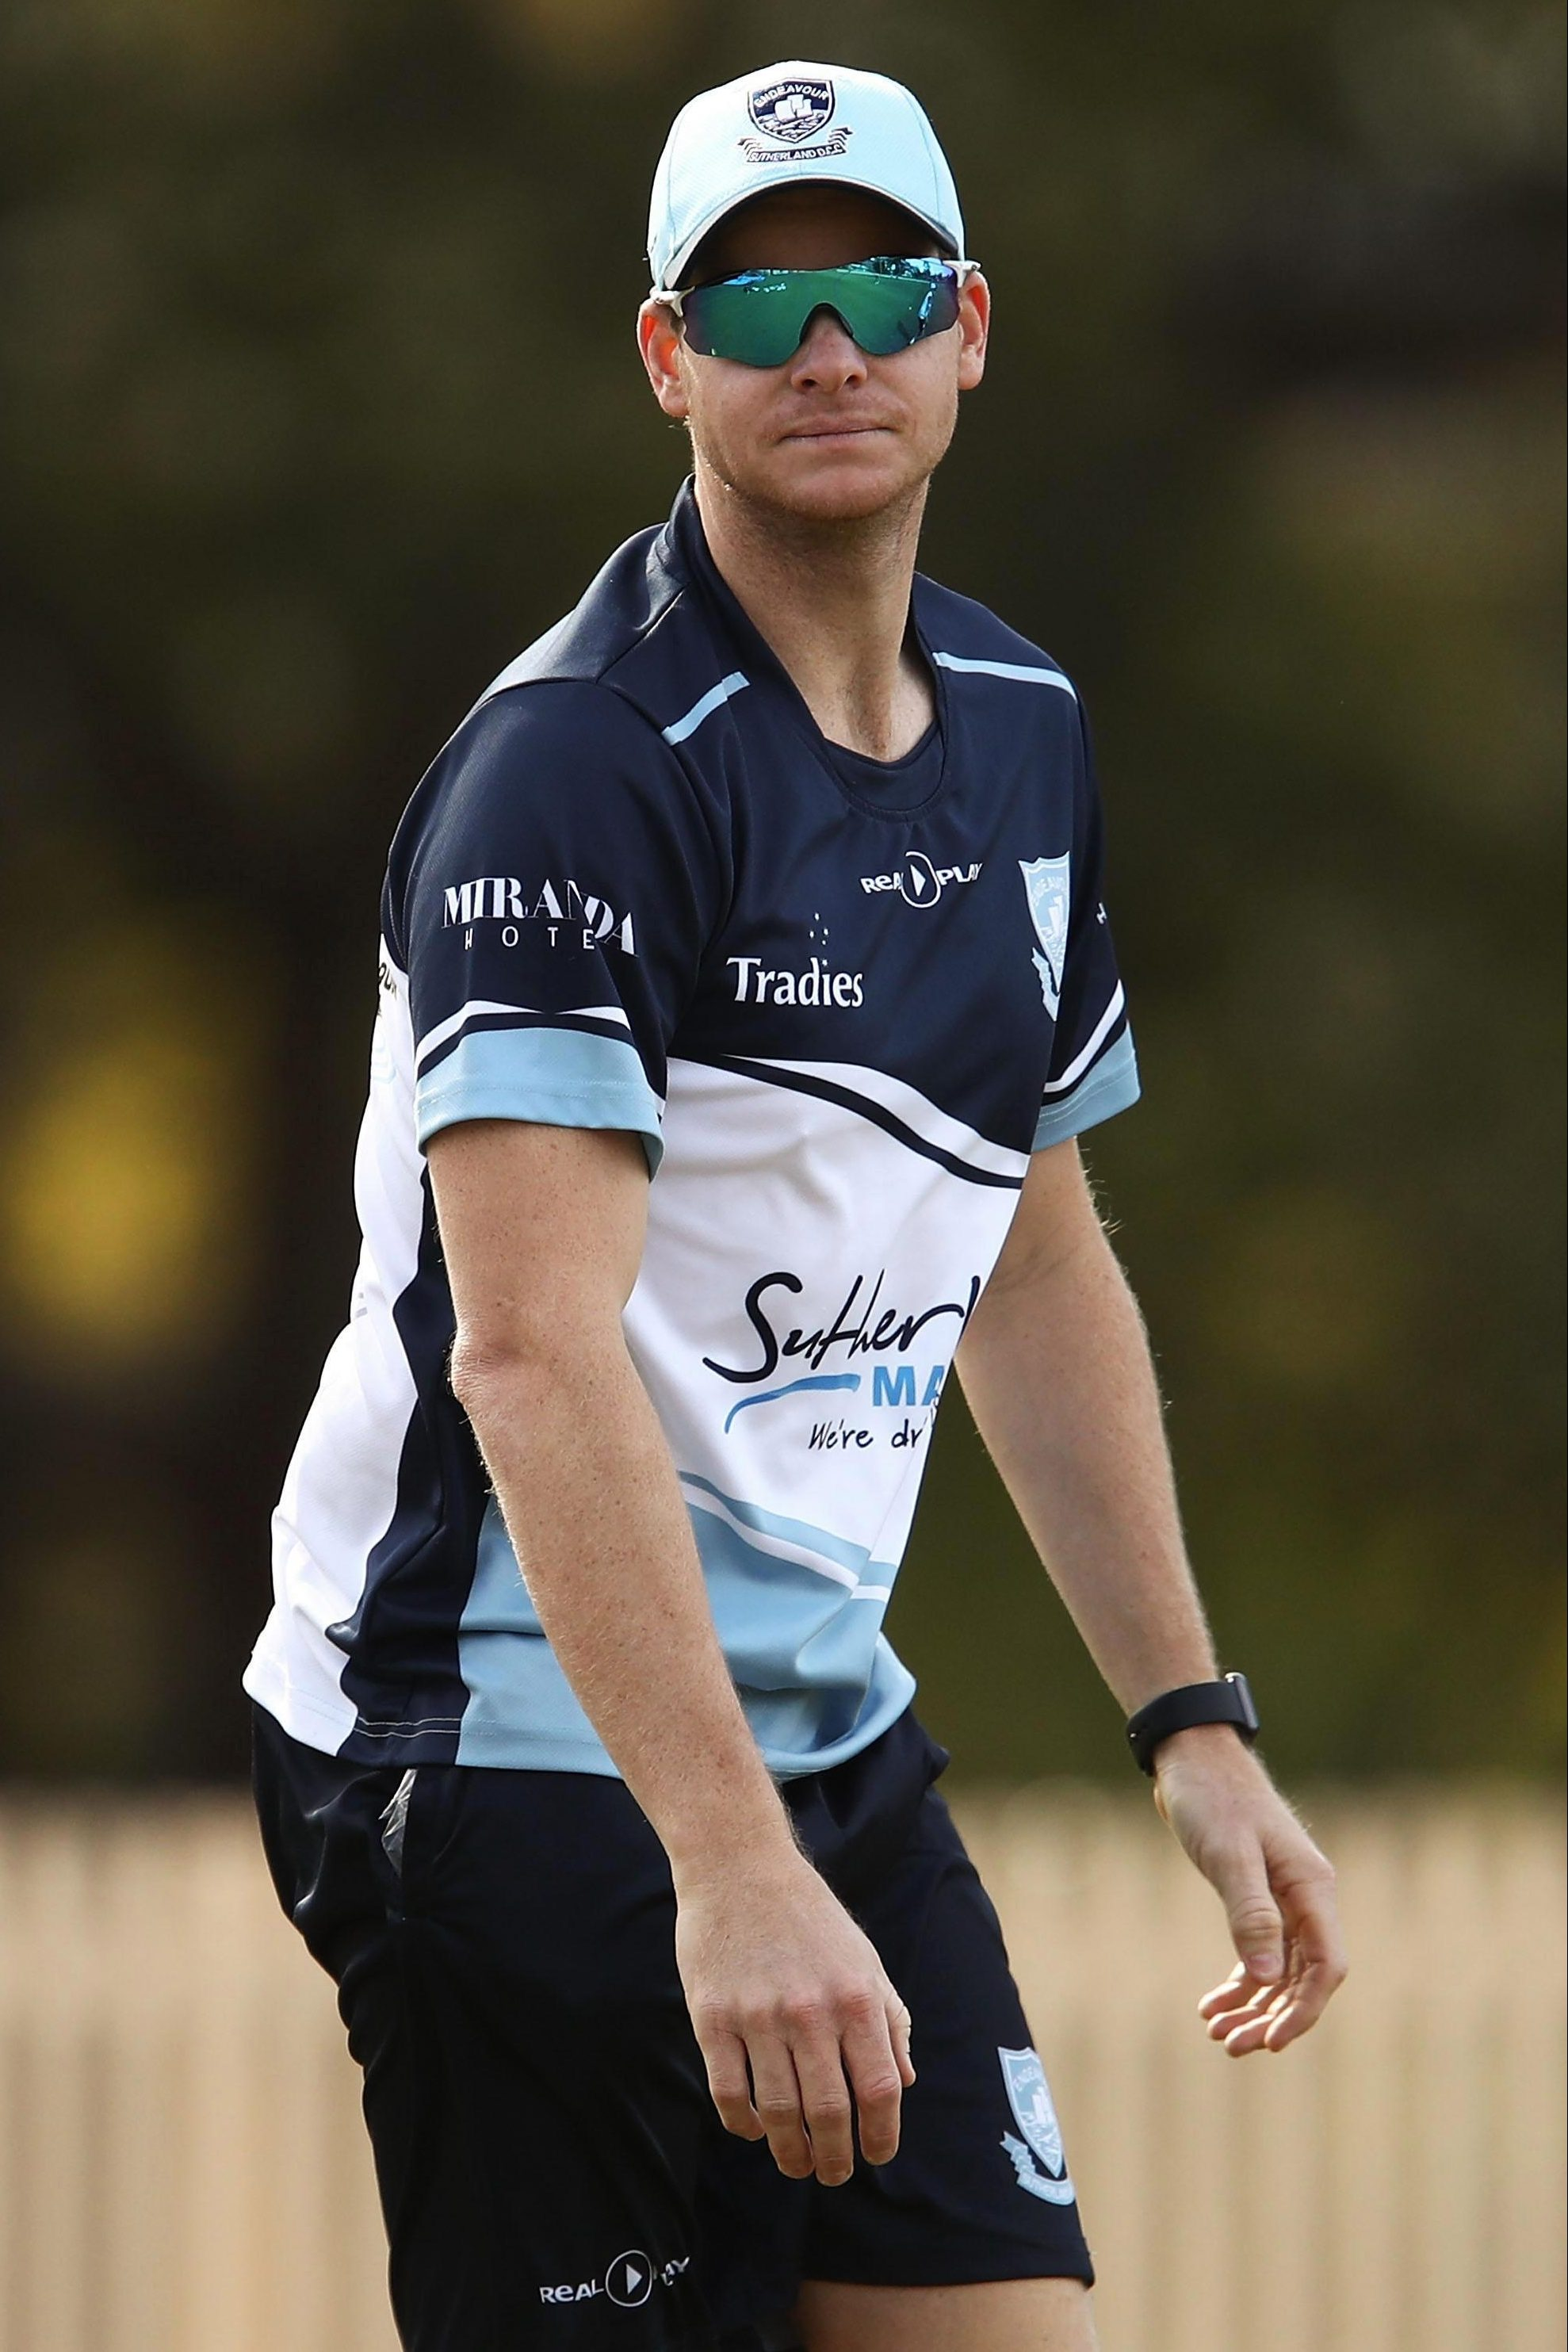 Aussie officials will be keen to monitor Steve Smith's reception